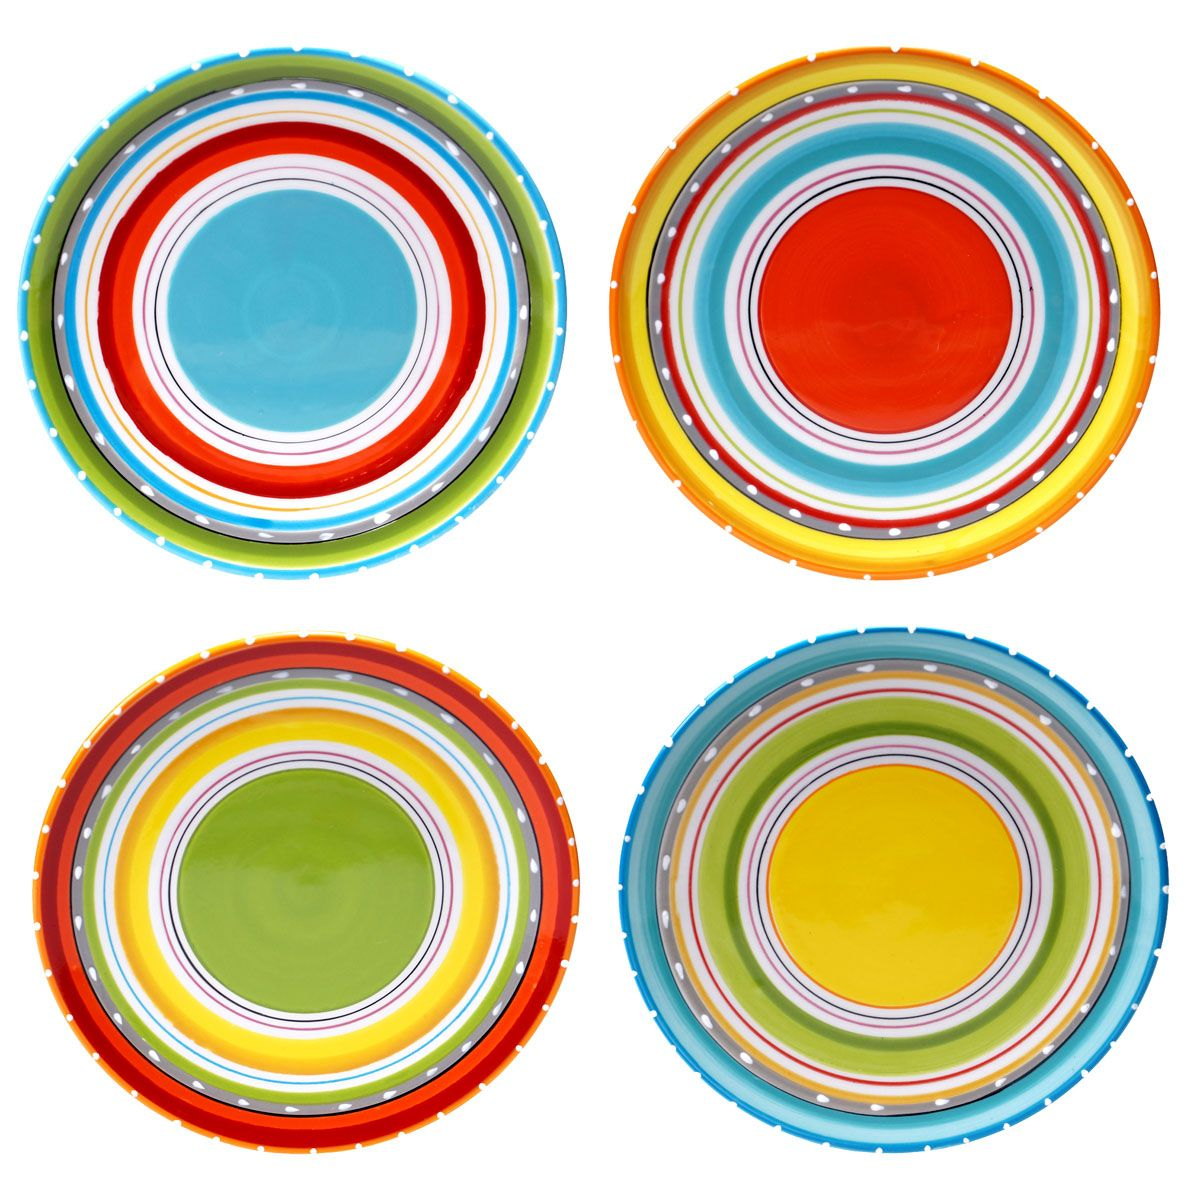 Sunrise Stripes Salad Plates - Set of 4